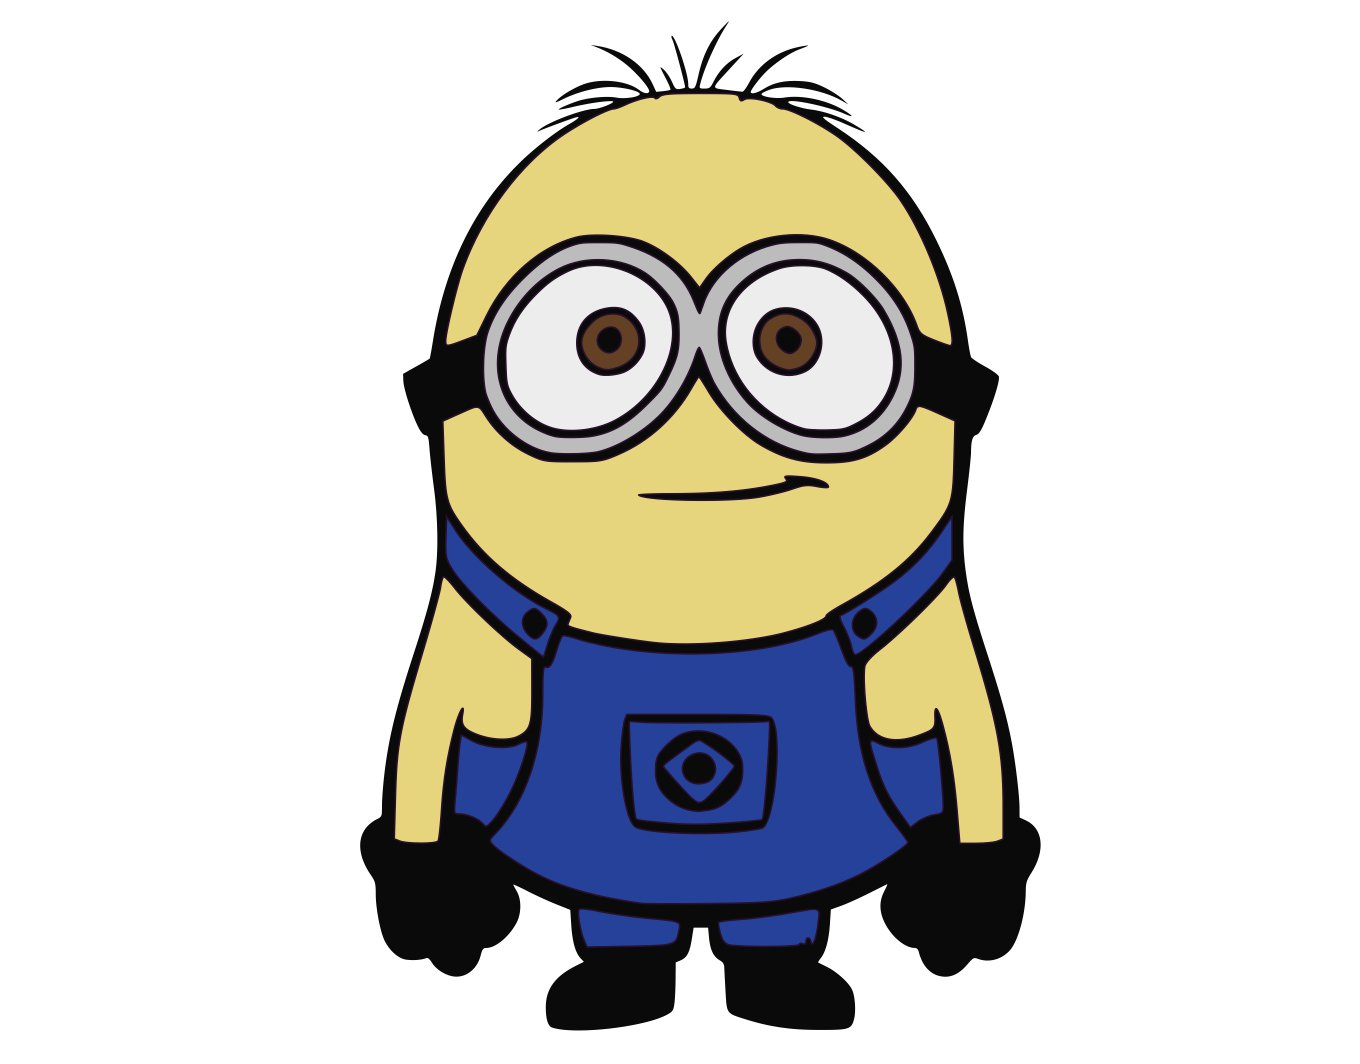 Svg Eps Dxf Png Pdf: Minion 2 SVG,DXF,PNG,EPS,JPG,and PDF Files